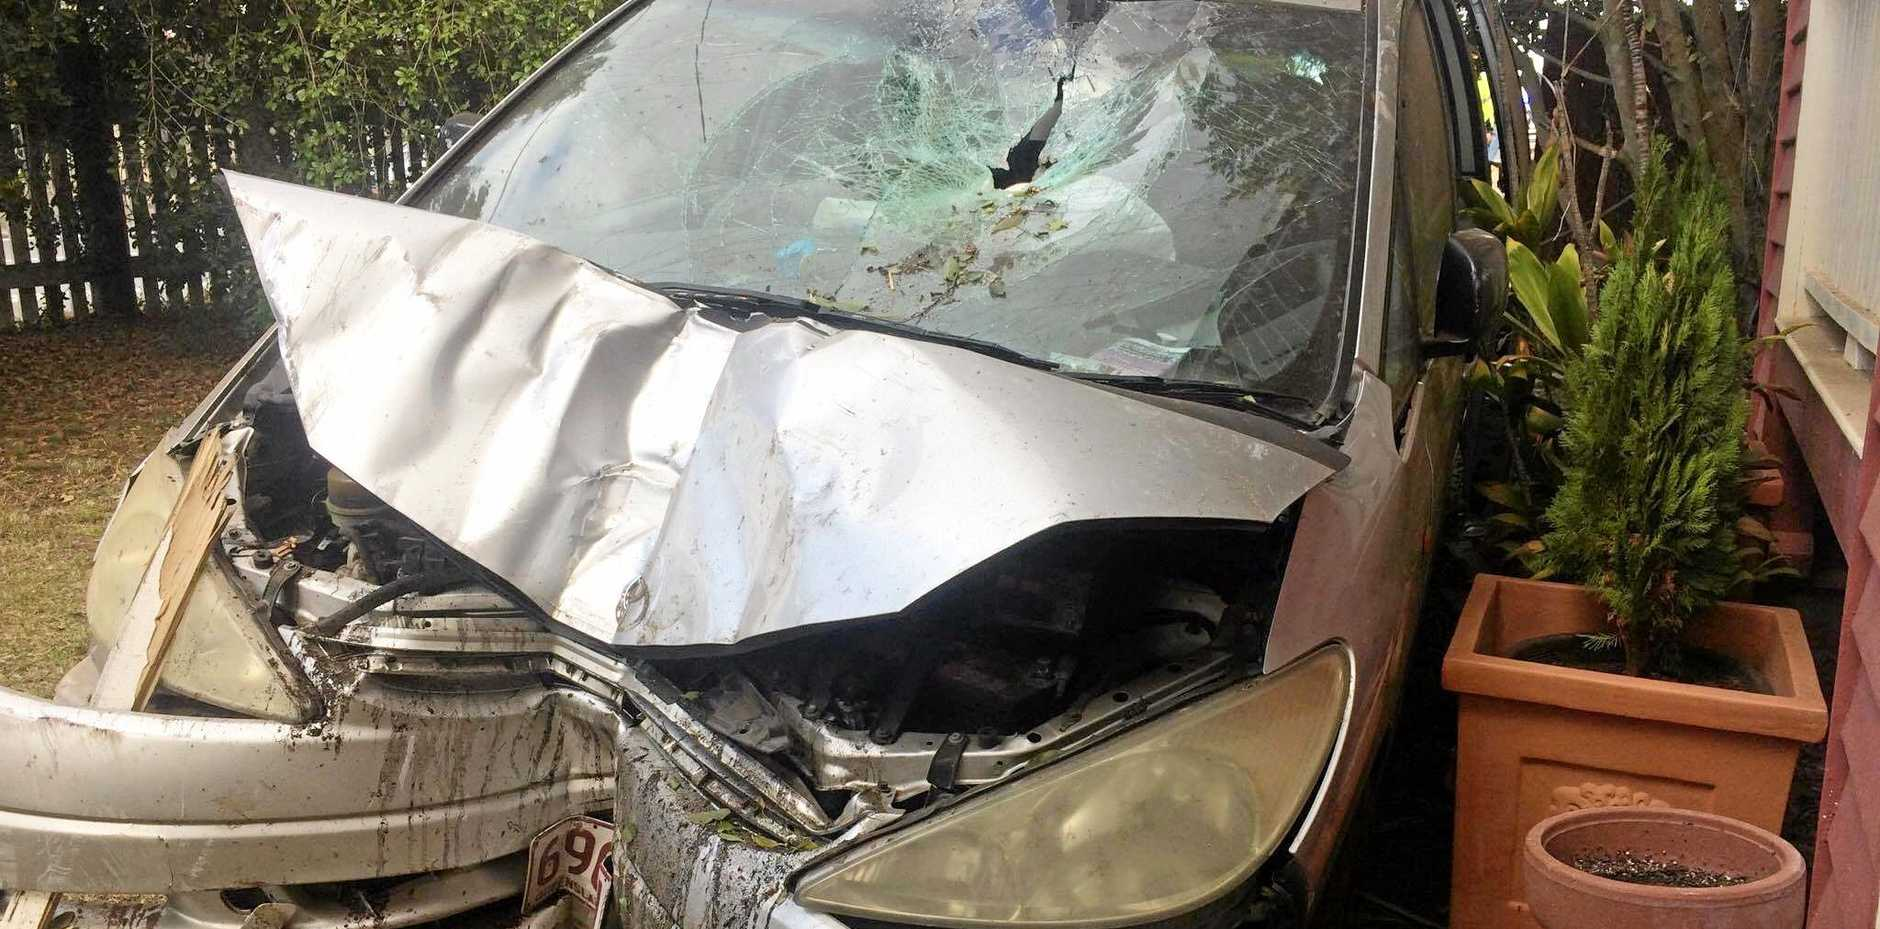 Five people were lucky to escape harm after their car crashed through two fences and was speared by a star picket.